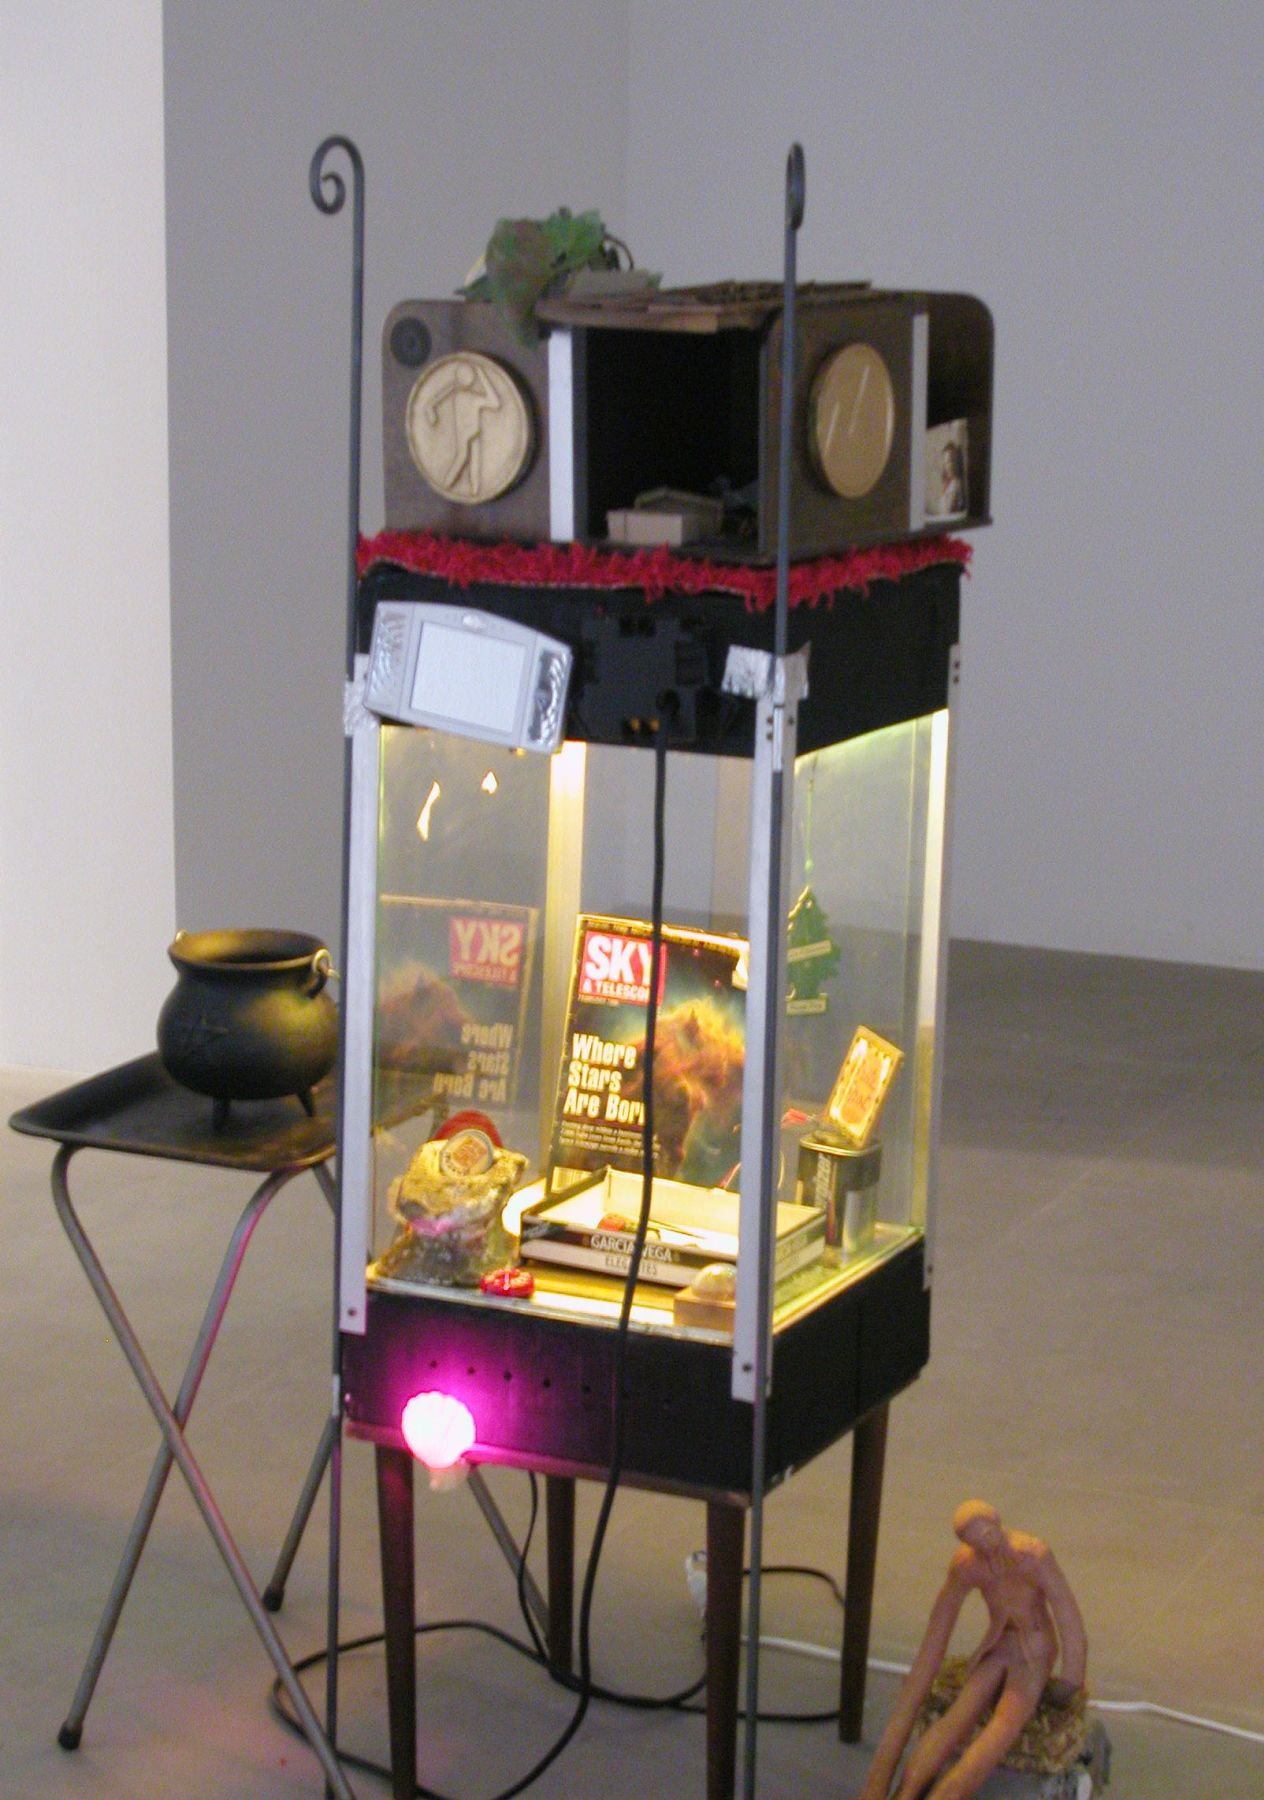 Julie Becker,  Untitled, 2004,  Mixed media installation,  Dimensions variable